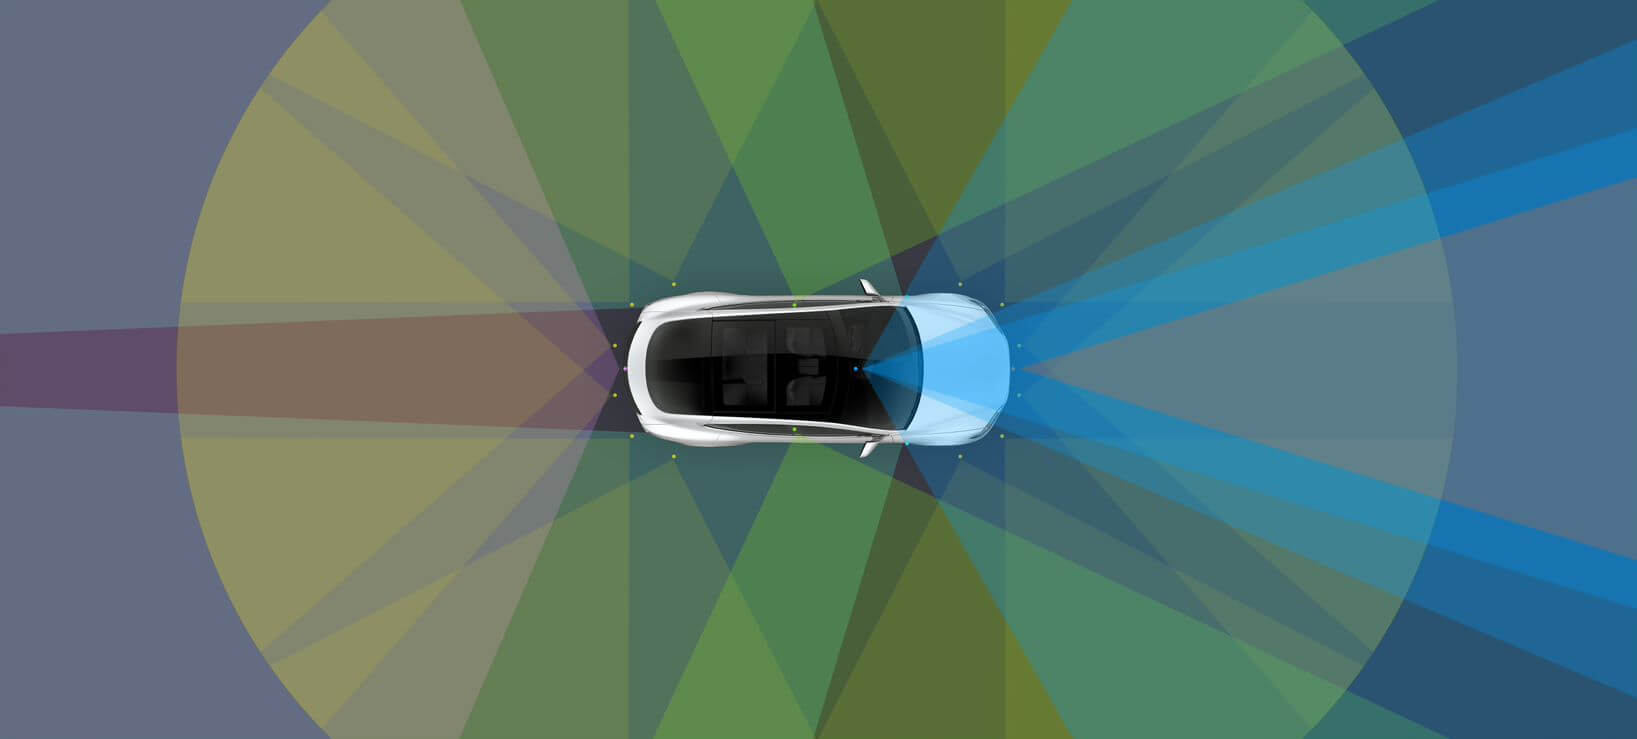 """It's being labeled """"a kind of science experiment"""" by Consumer Reports Tesla"""